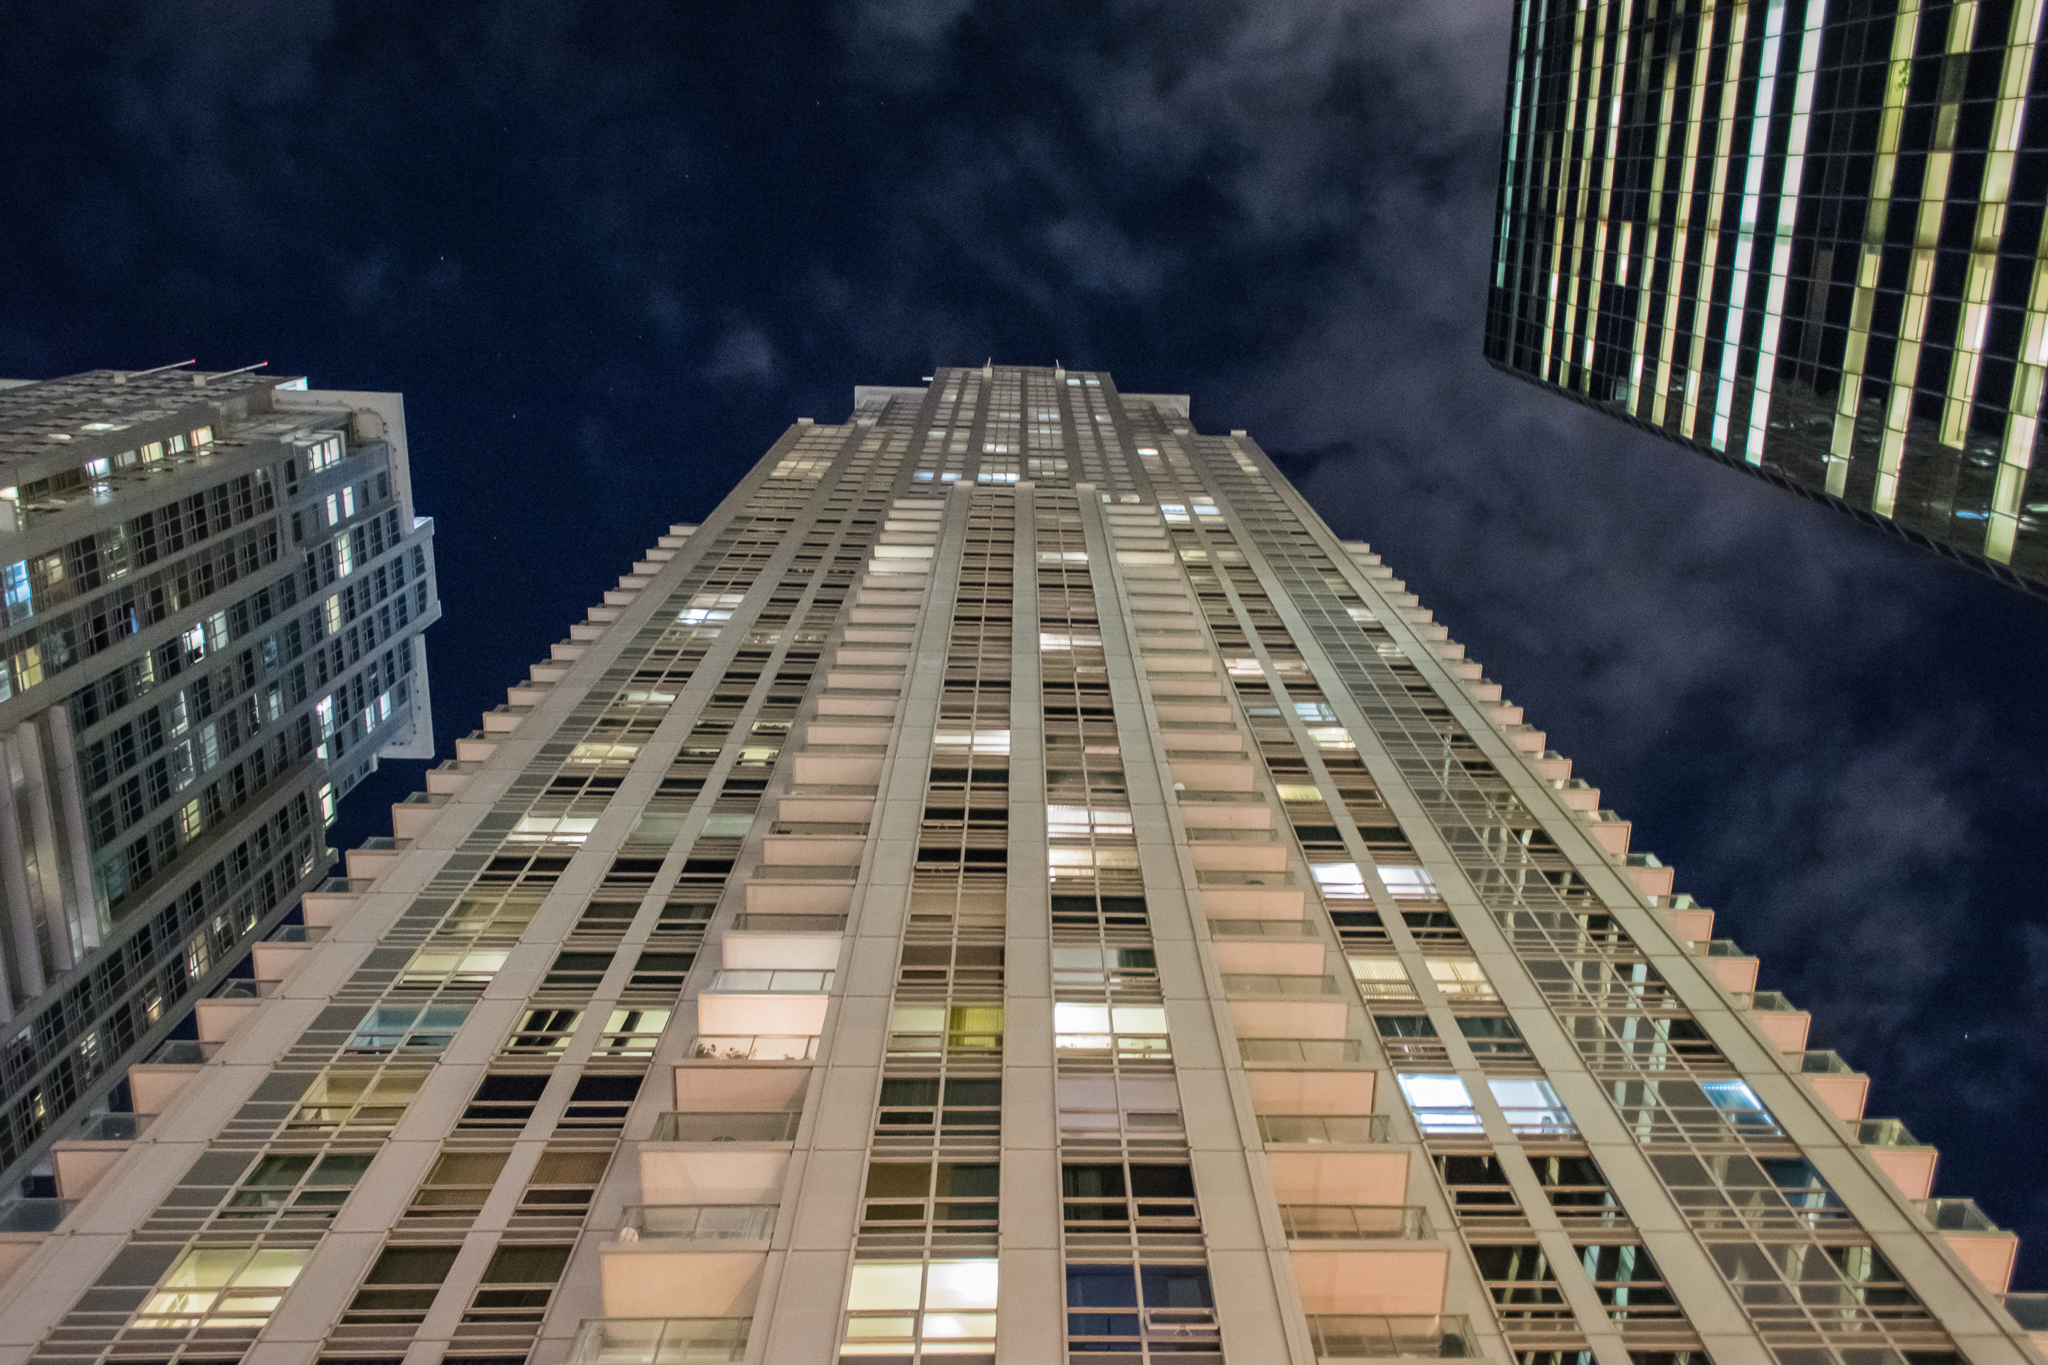 High Rise (1/2s, f/6.3, ISO5000)